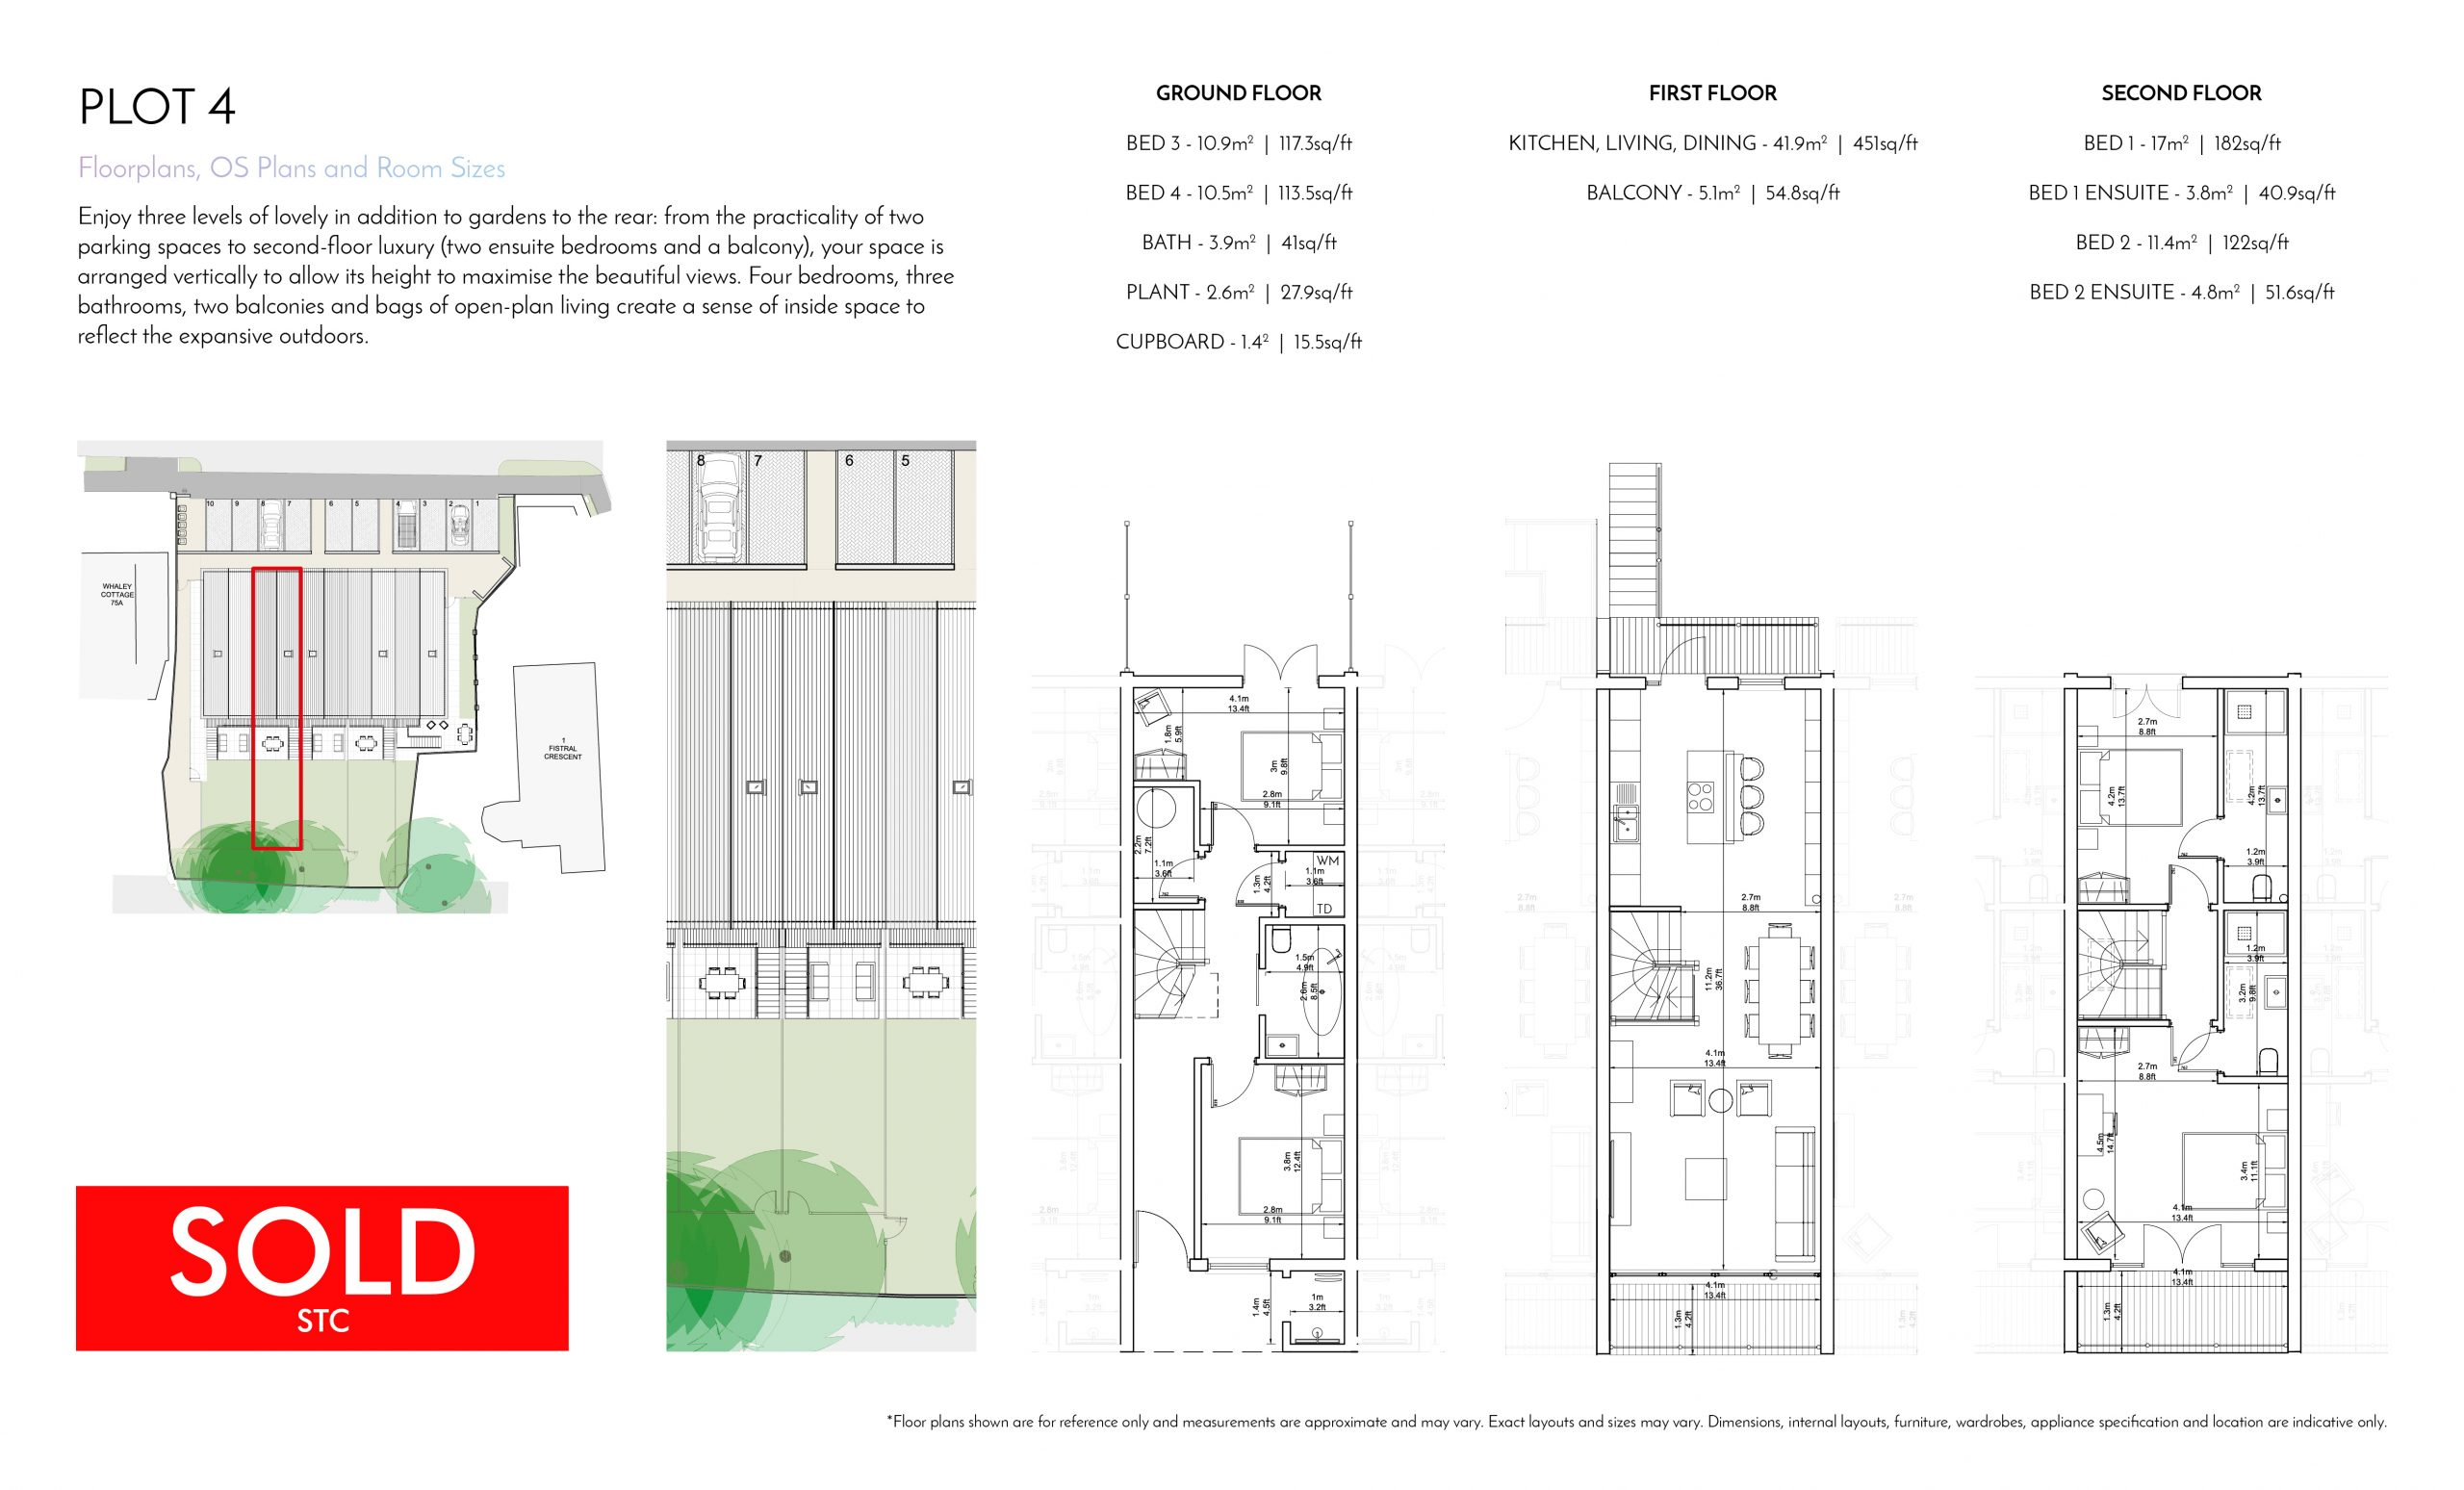 Stephens and Stephens Developers Breakwater Pentire Newquay Cornwall Floorplans Plot 4 SOLD